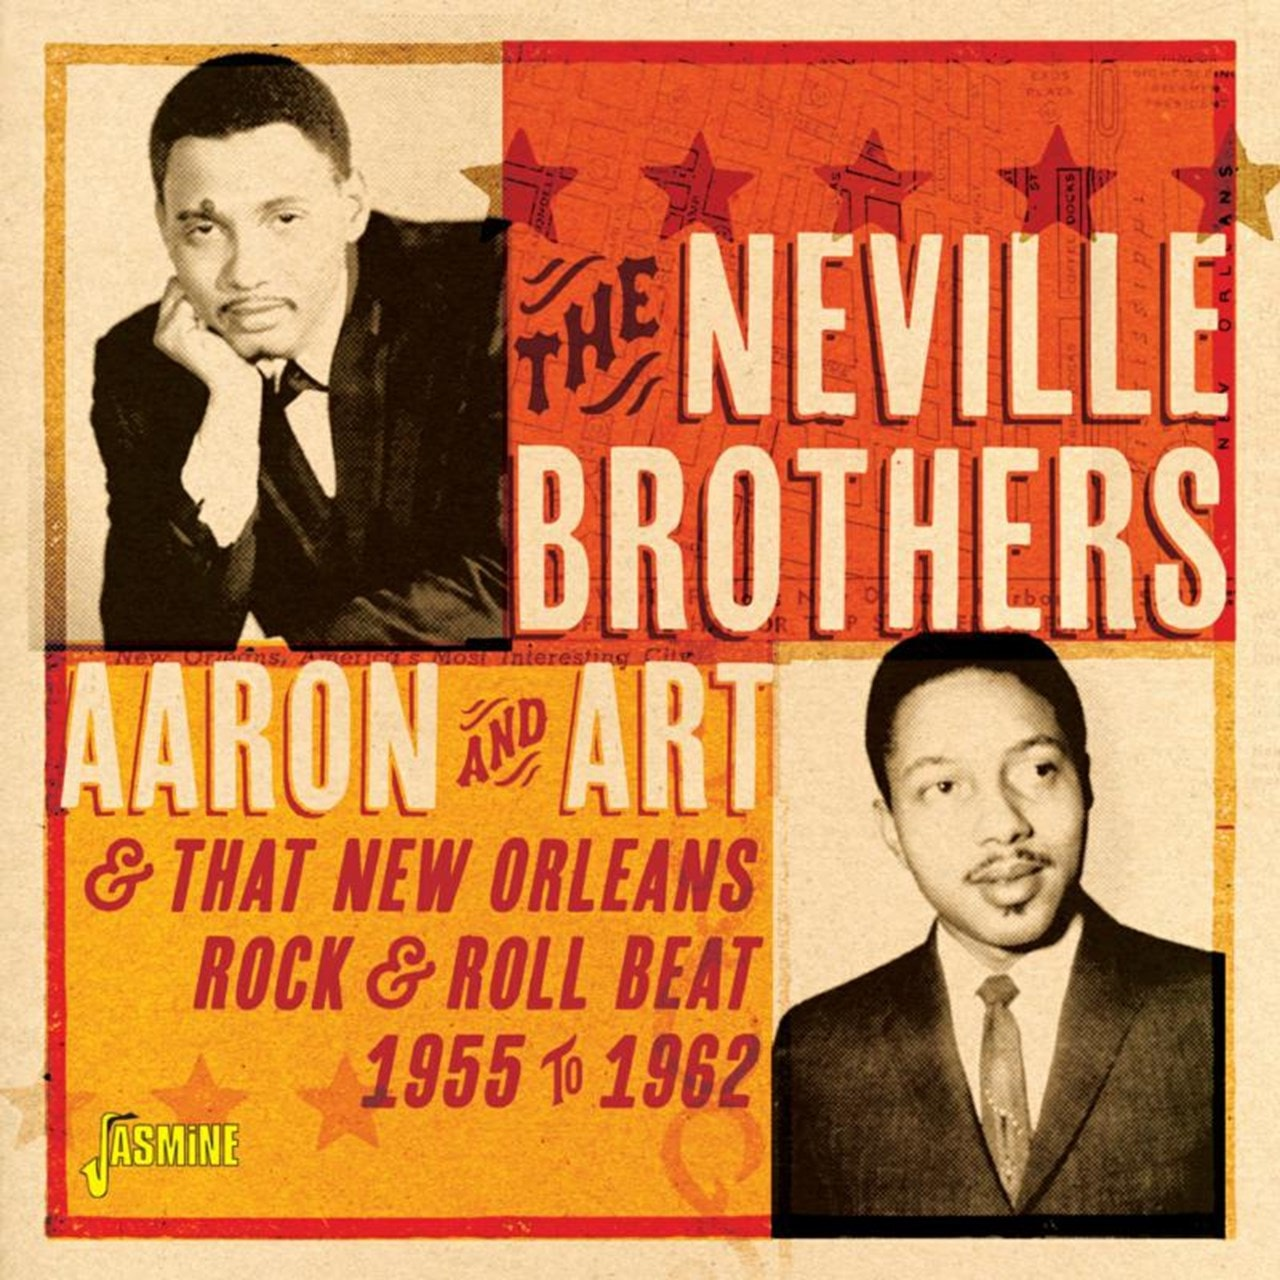 Aaron and Art & That New Orleans Rock & Roll Beat 1955 to 1962 - 1